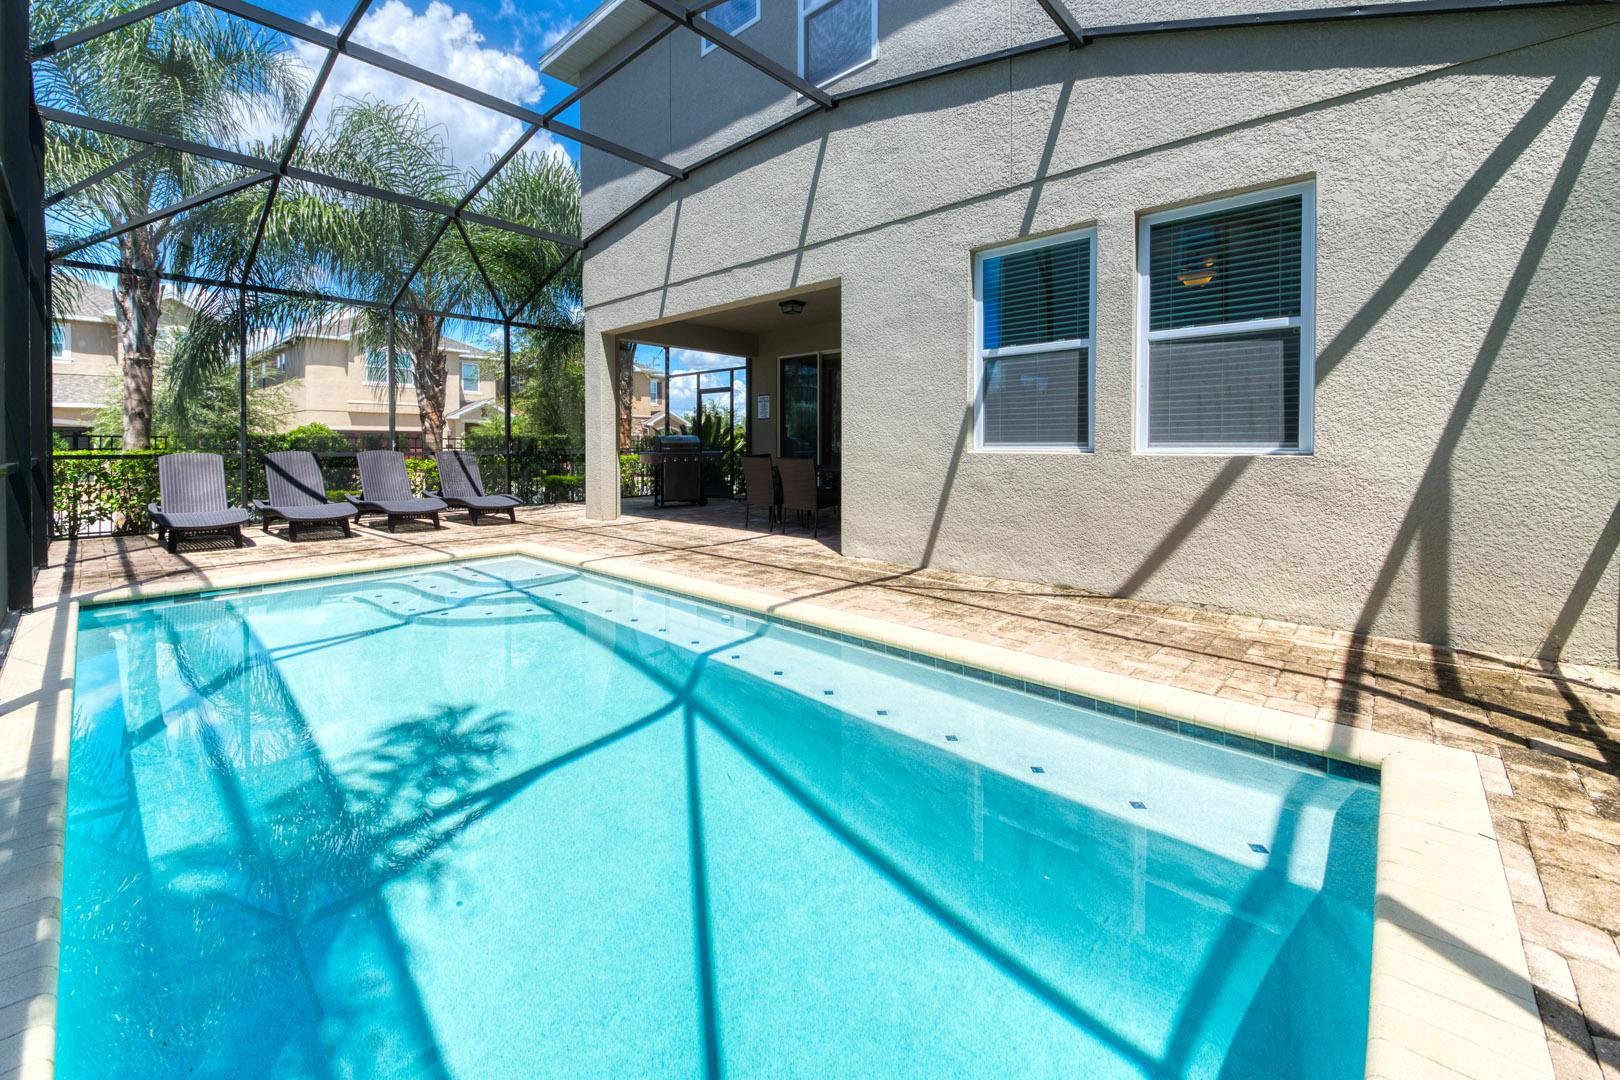 Property Image 1 - Spacious Home near Disney World with Water Park Access